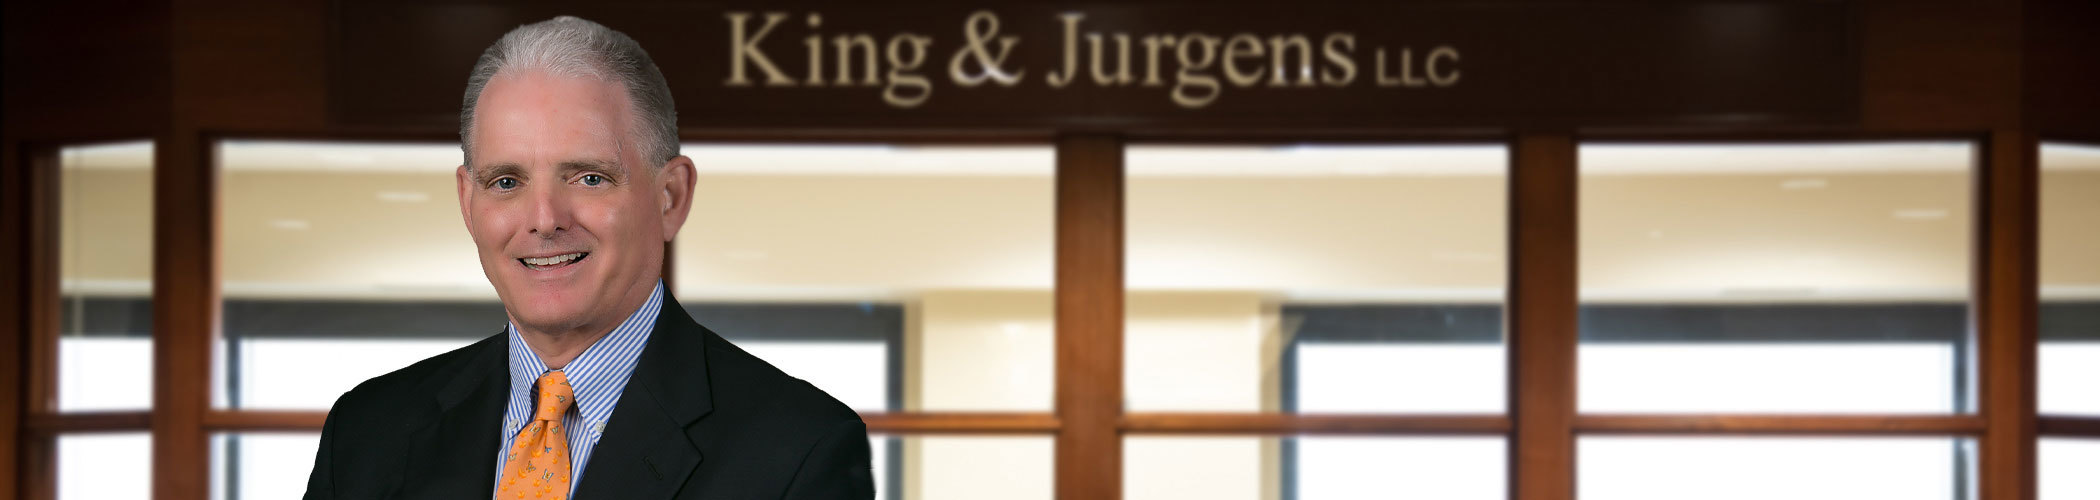 George Jurgens III, King & Jurgens, L.L.C. Photo